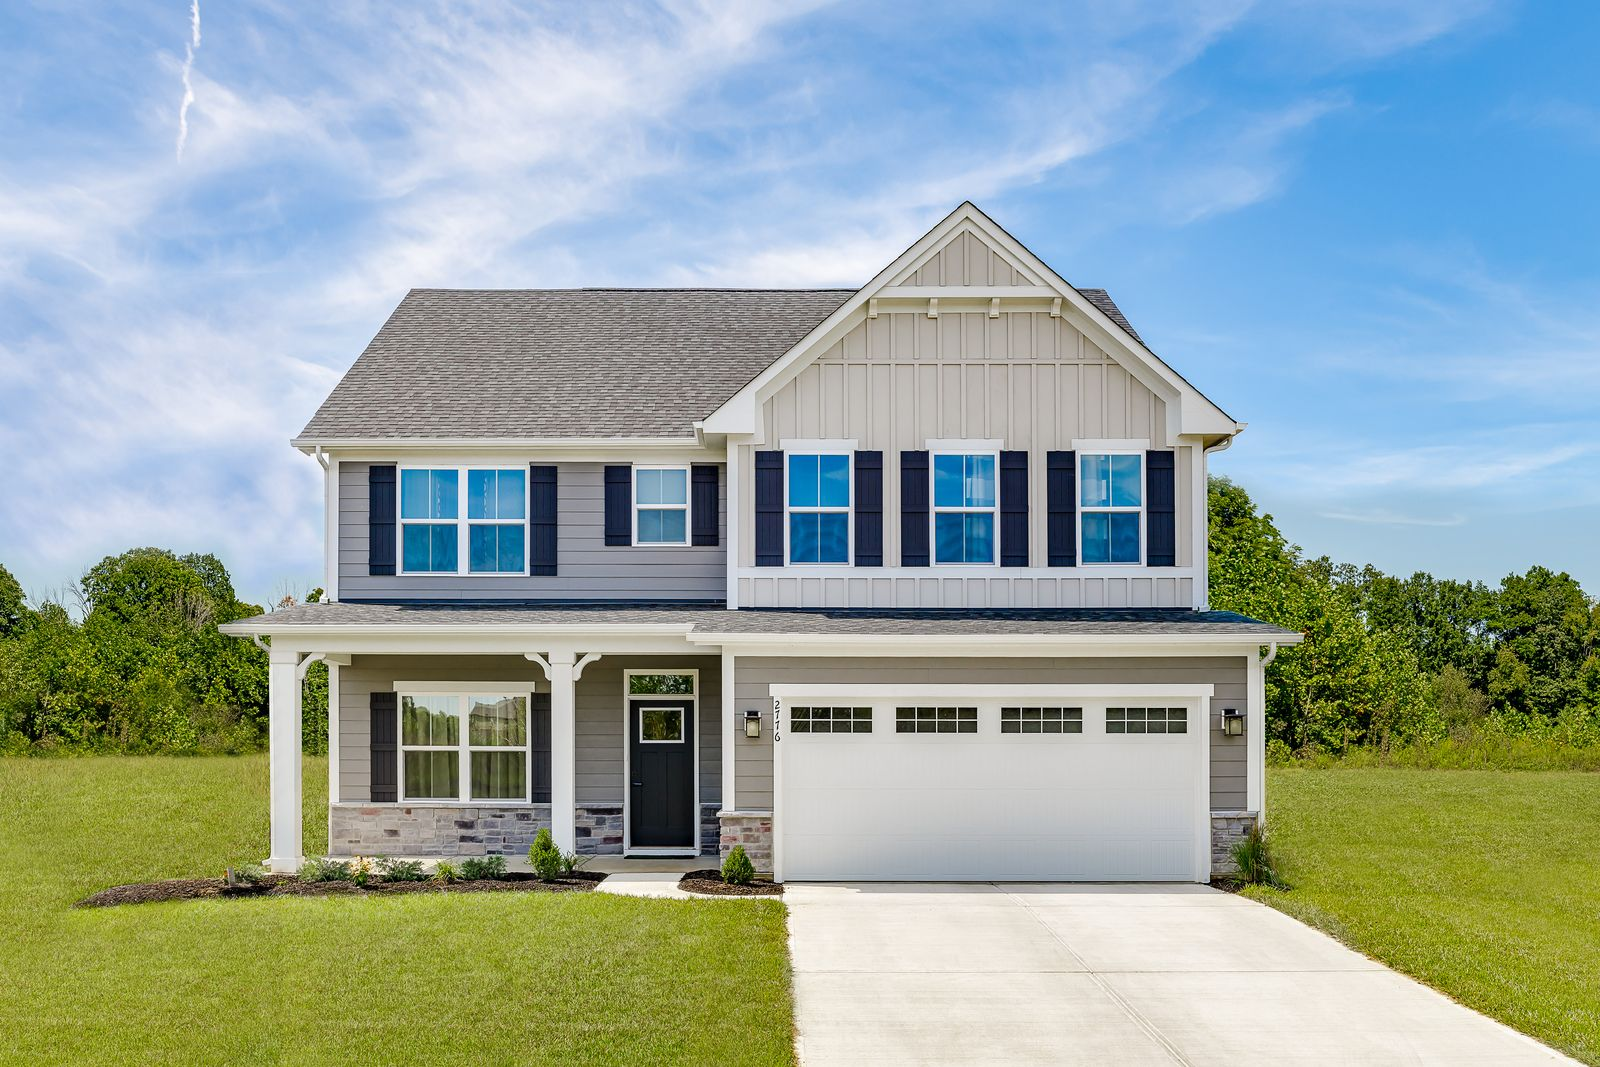 Welcome to Lafayette Meadow in South Fayette:The only community in South Fayette with stunning views, up to 6 bedrooms, 3 car garages and located between Robinson and Southpointe.Click here to schedule an appointment.